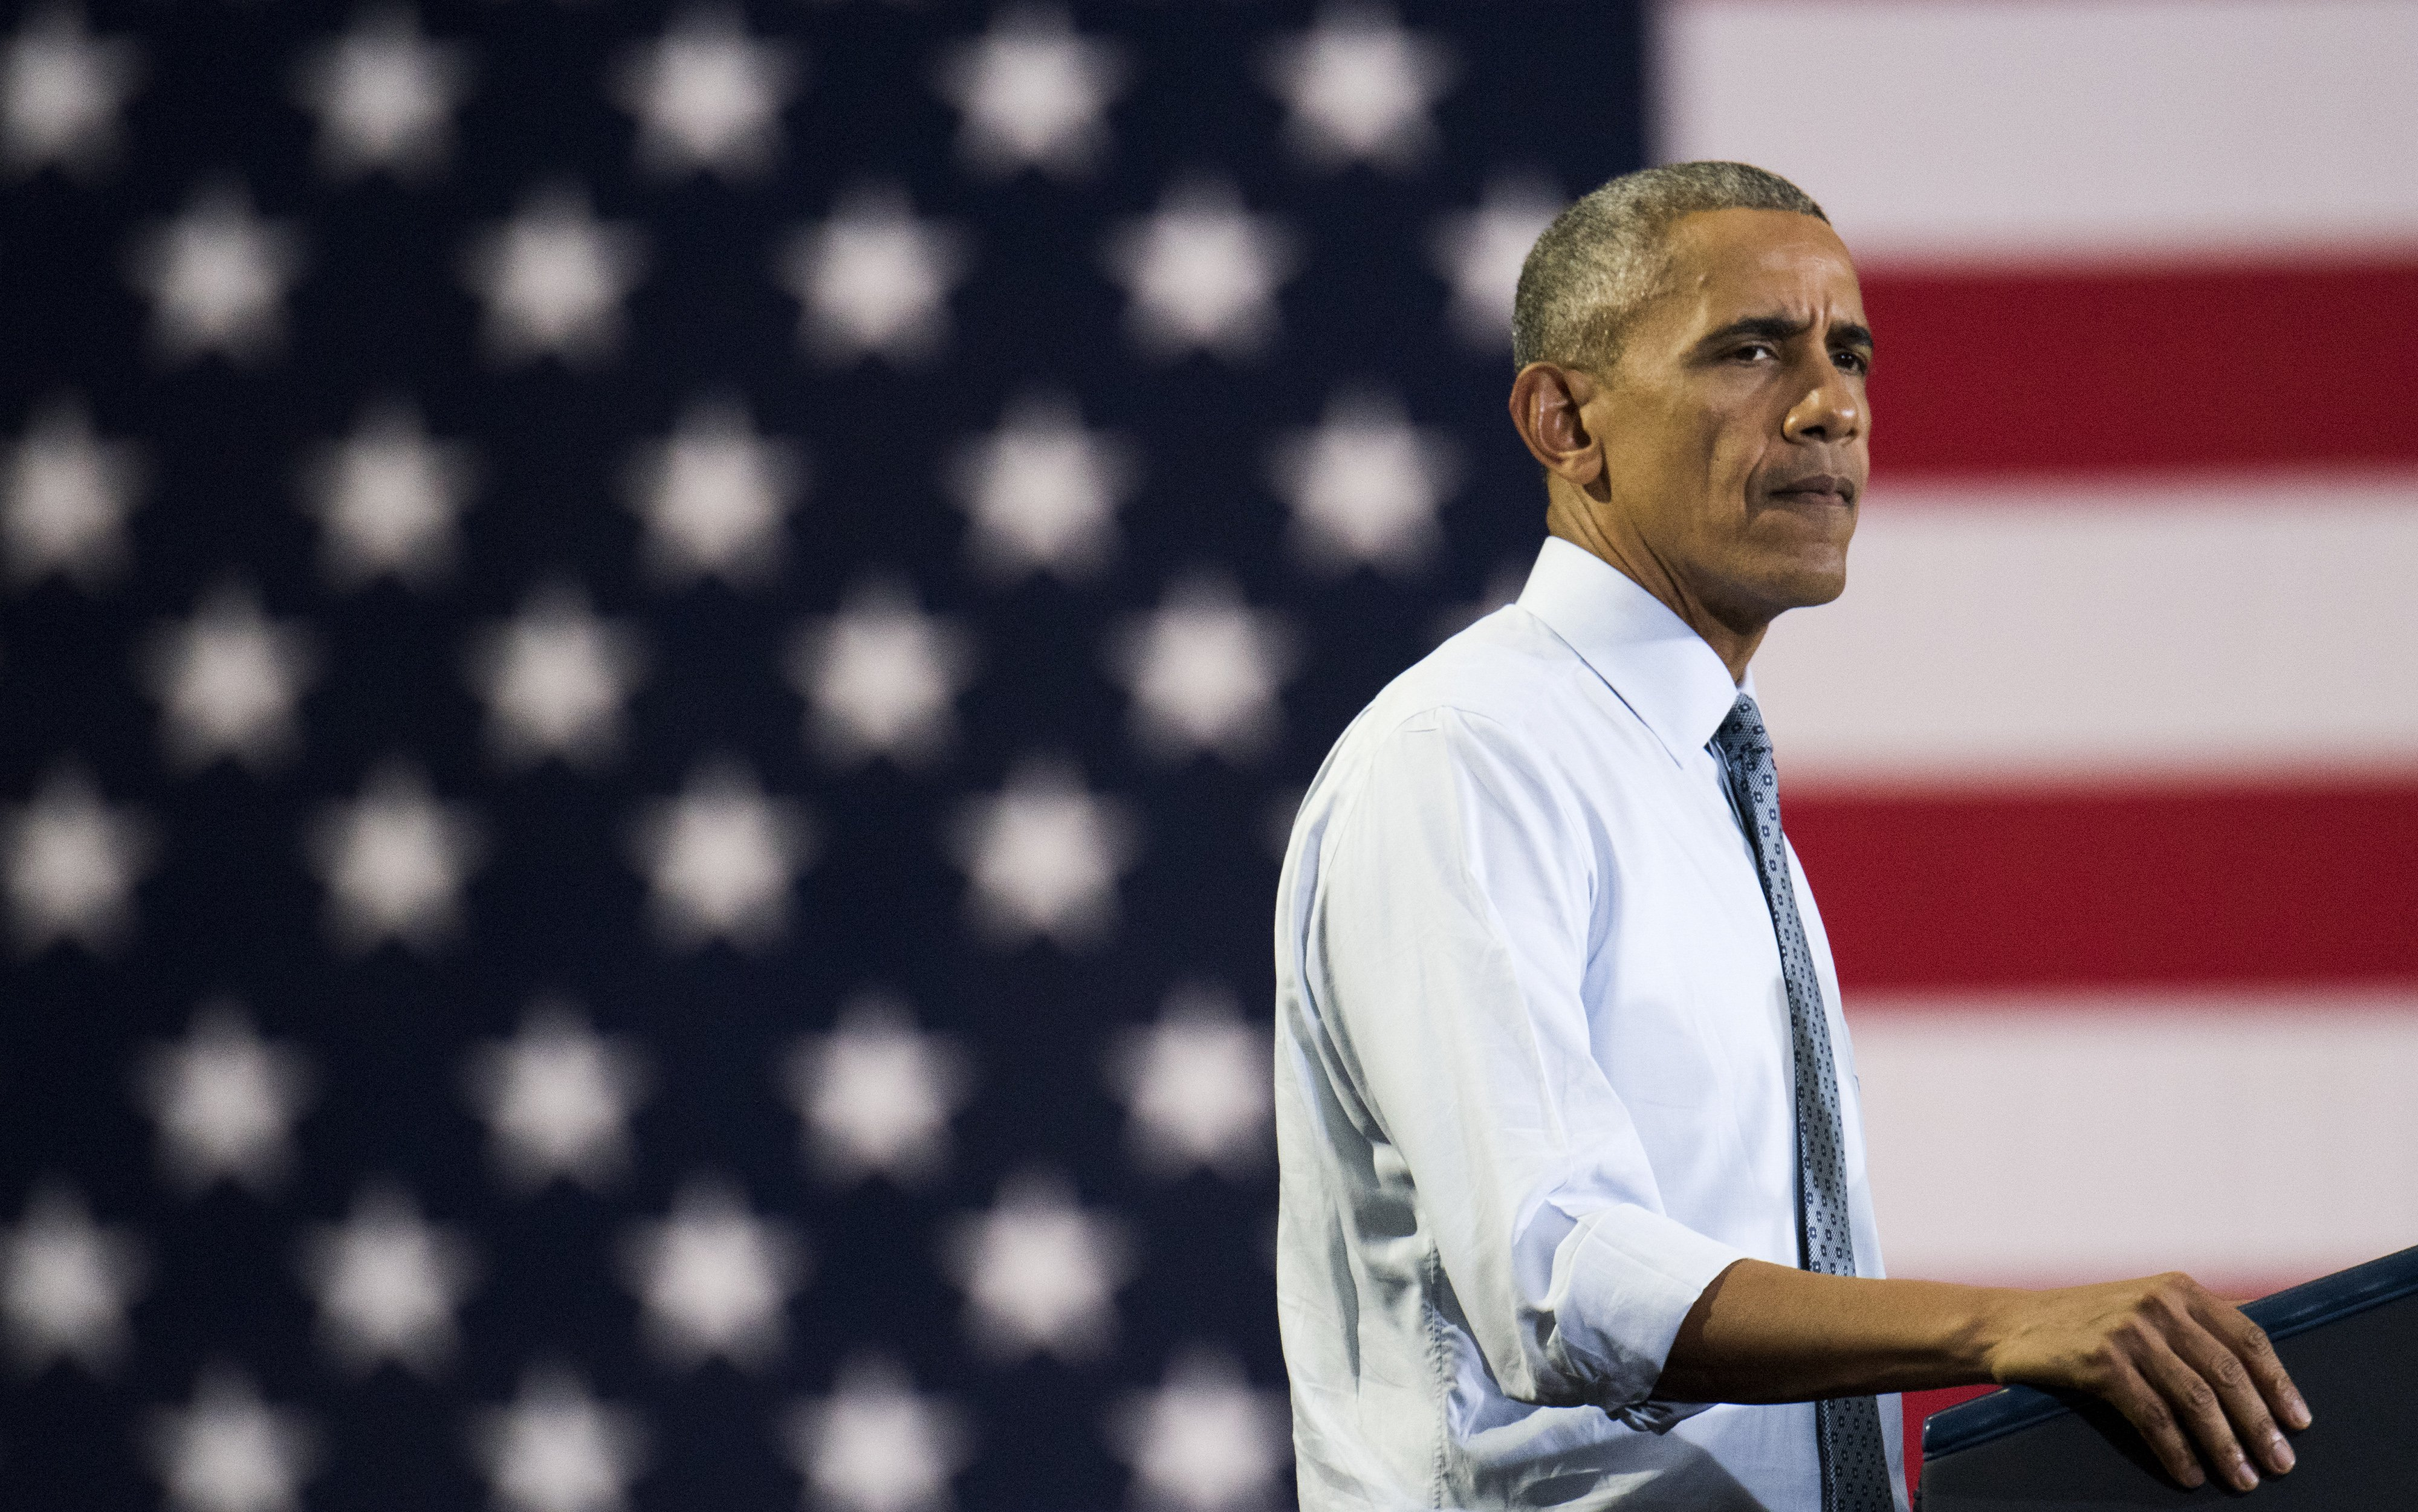 President Obama speaks during a campaign event for Hillary Clinton at Capital University on Nov. 1, 2016 in Columbus, OH.